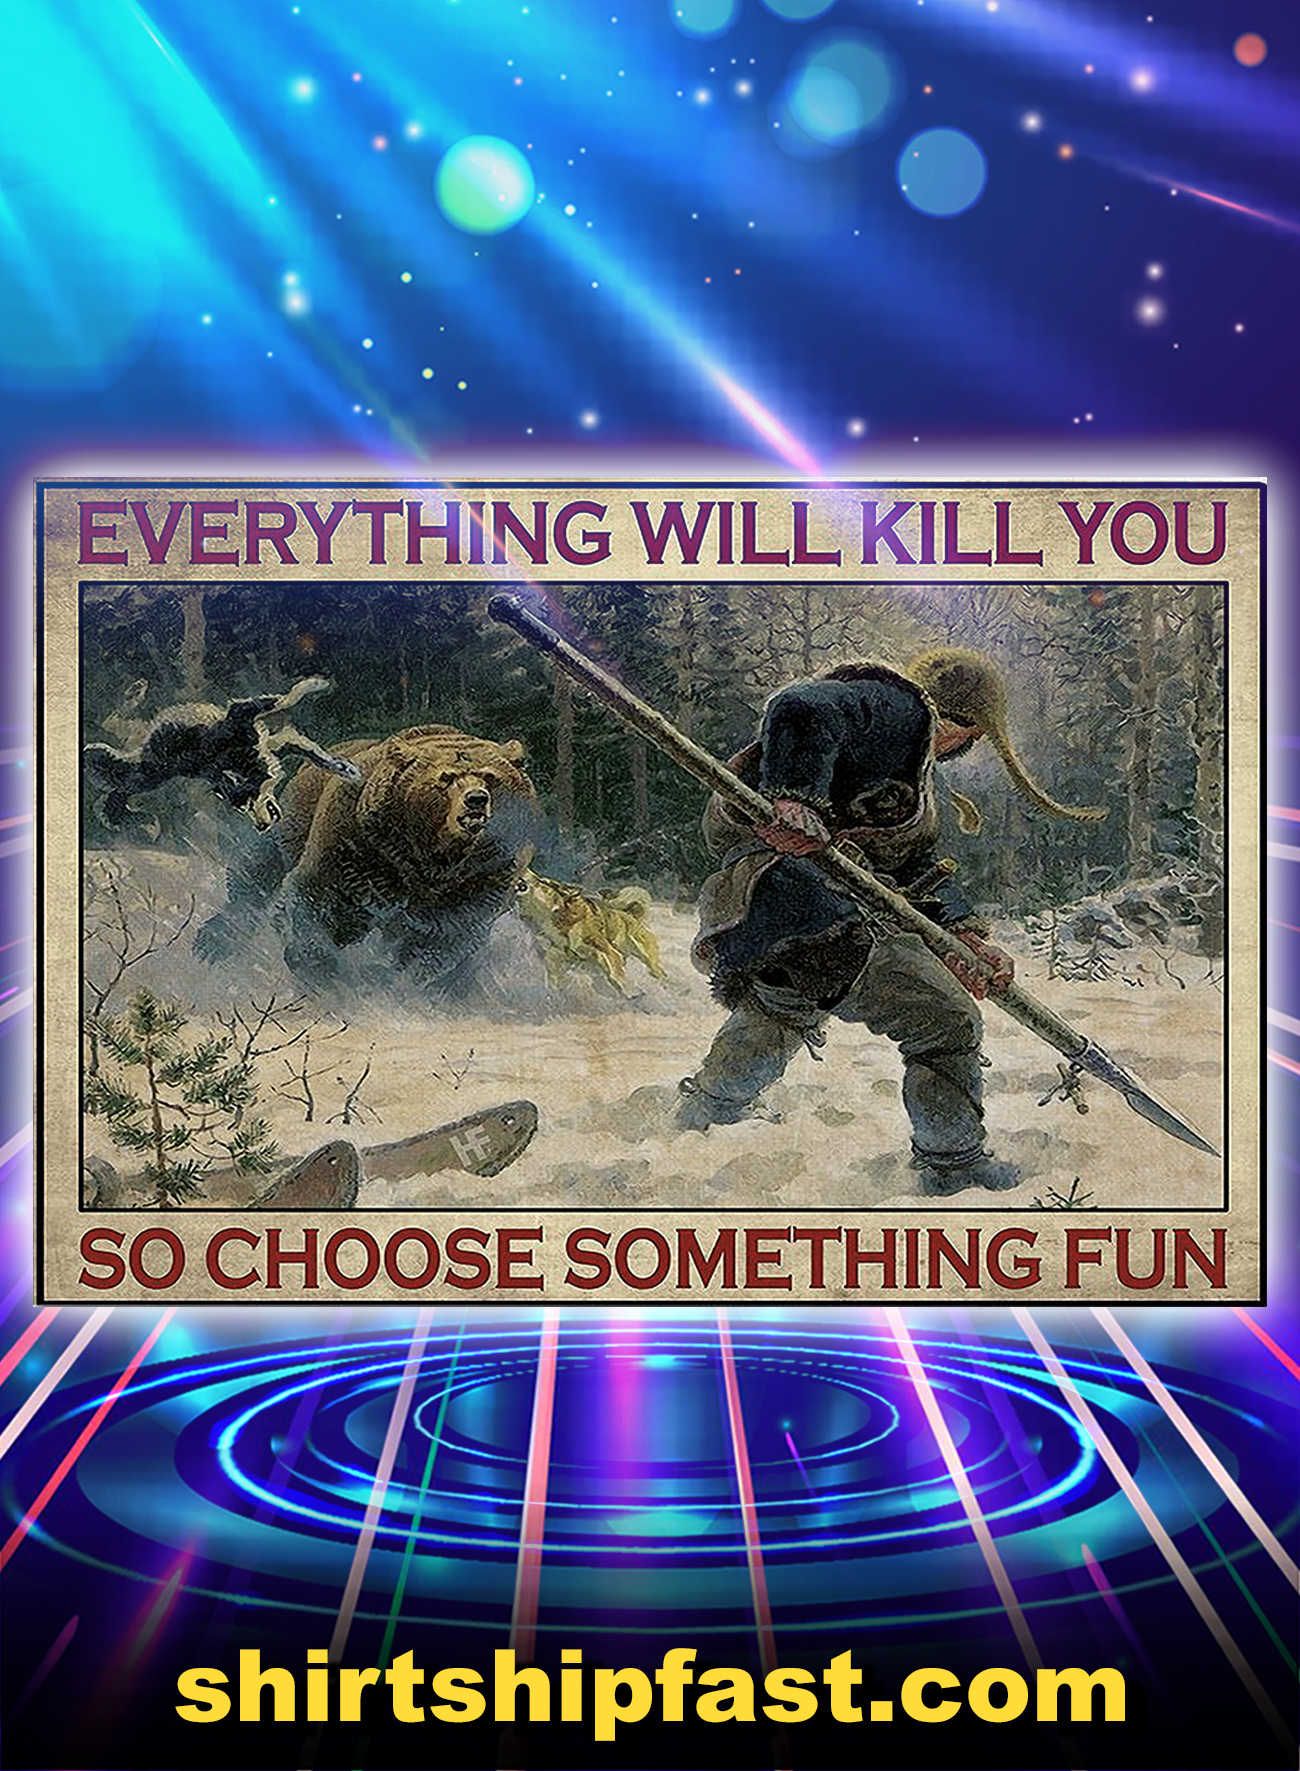 Bear hunting everything will kill you so choose something fun poster - A4